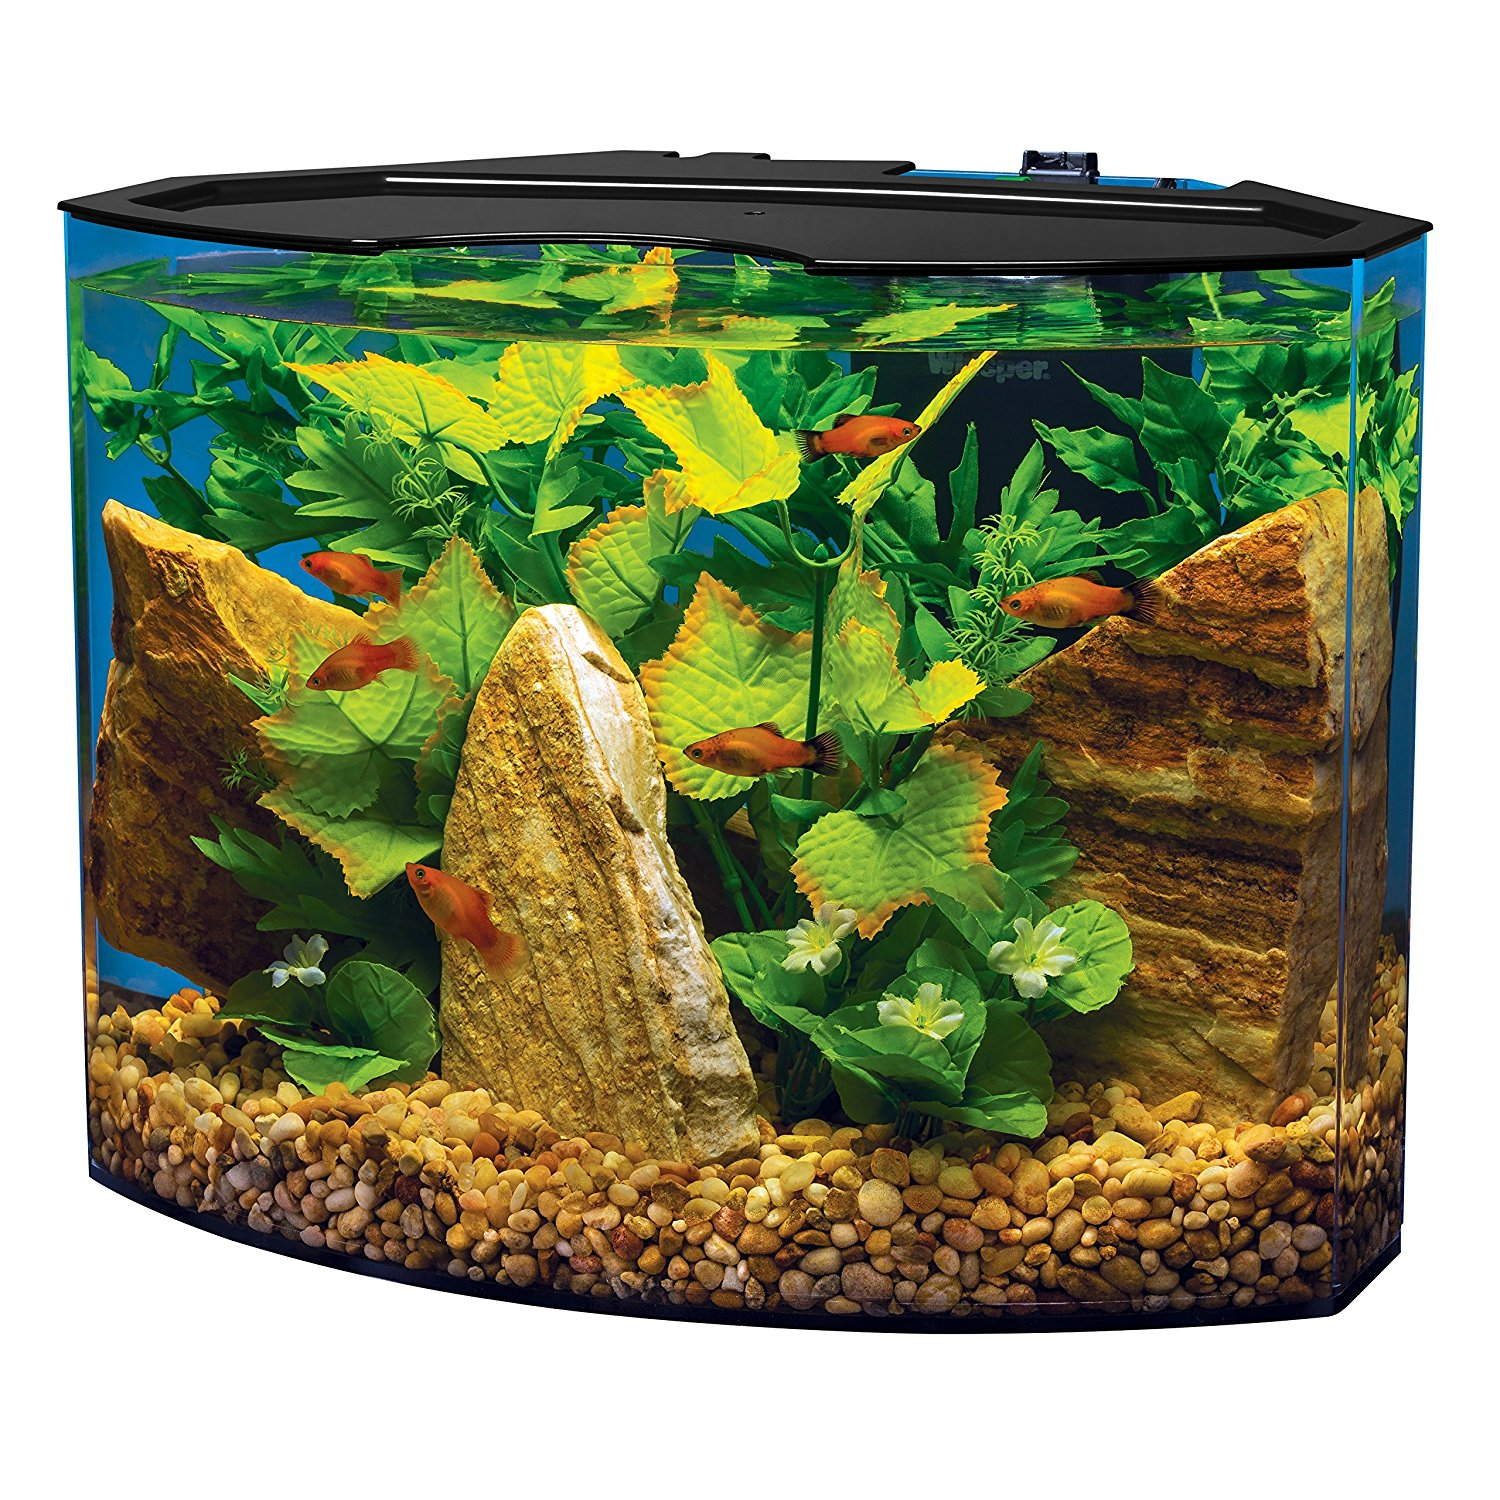 tetra 5 gallon led aquarium kit review